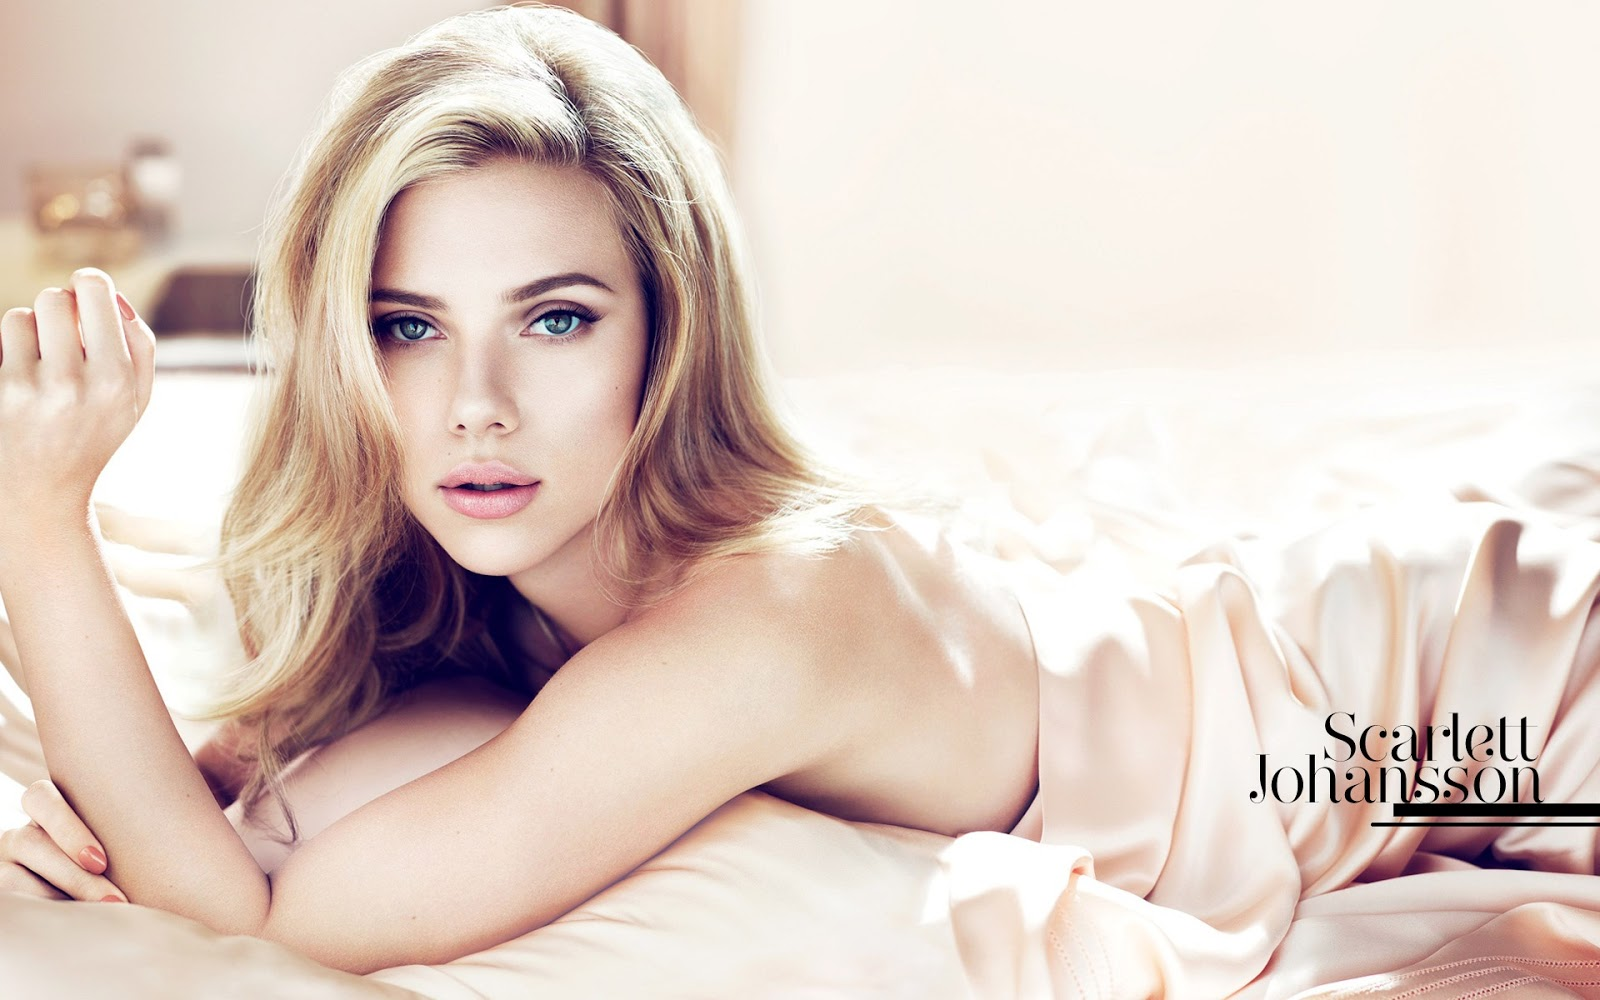 scarlett johansson hot hd - photo #13